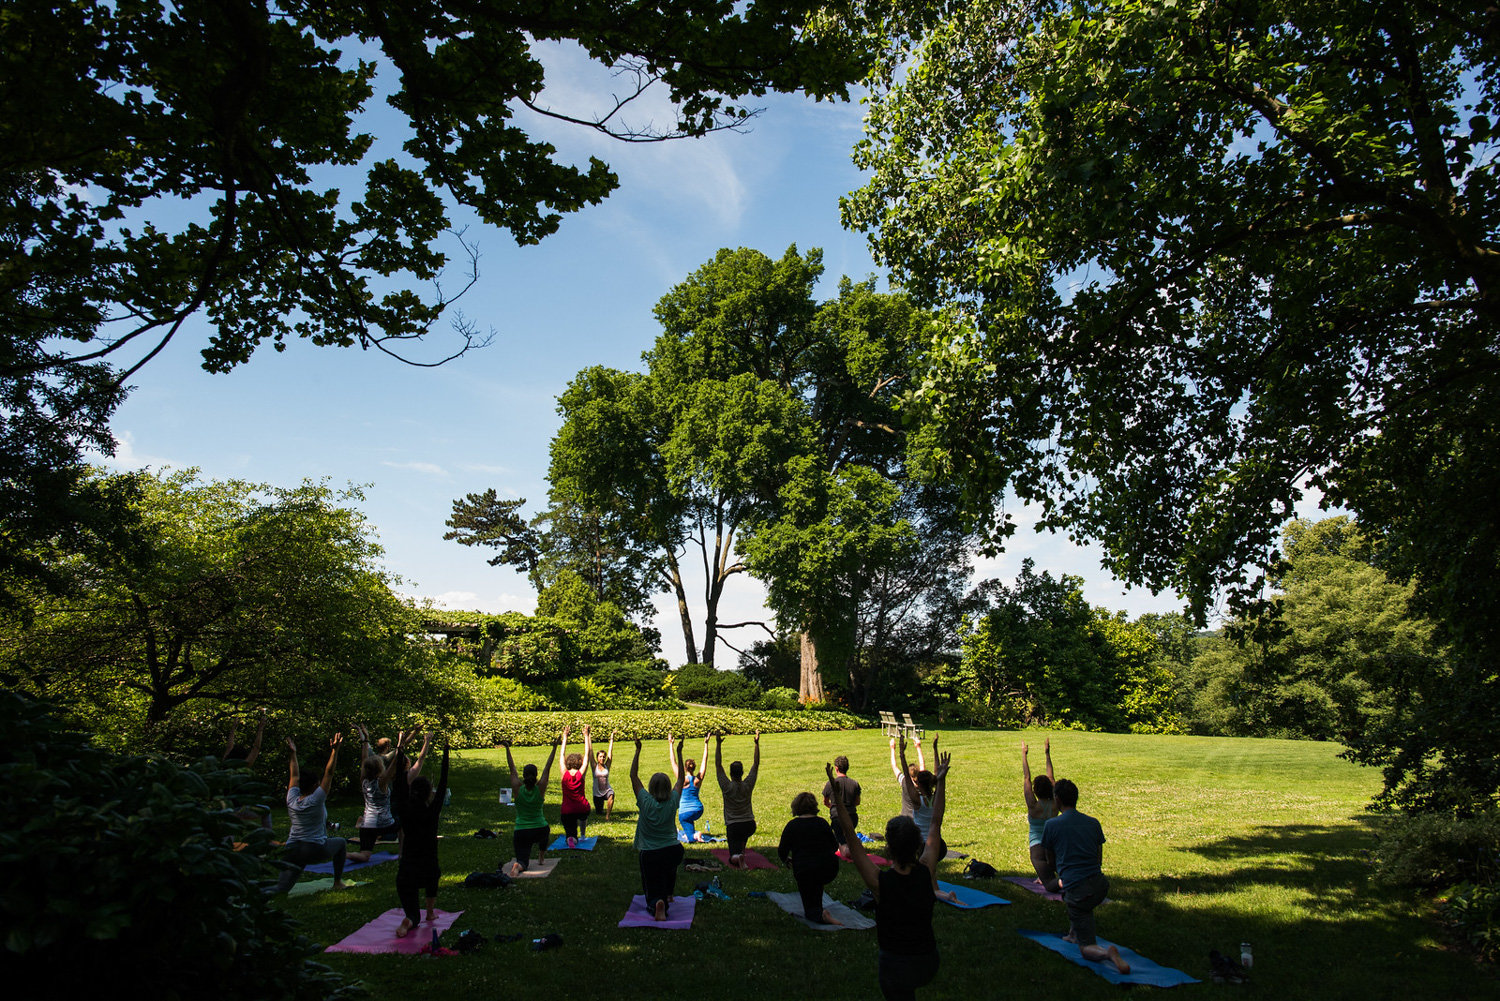 Before the coronavirus pandemic, Wave Hill offered yoga classes on its grounds. Now, the garden offers them online in a bid to keep people healthy while staying home.